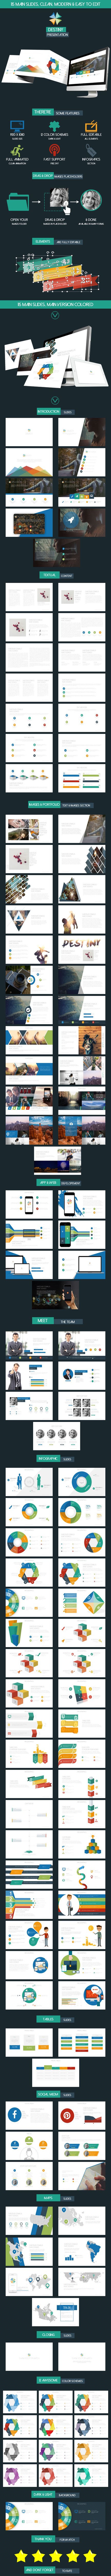 Dinasty (PowerPoint Templates)